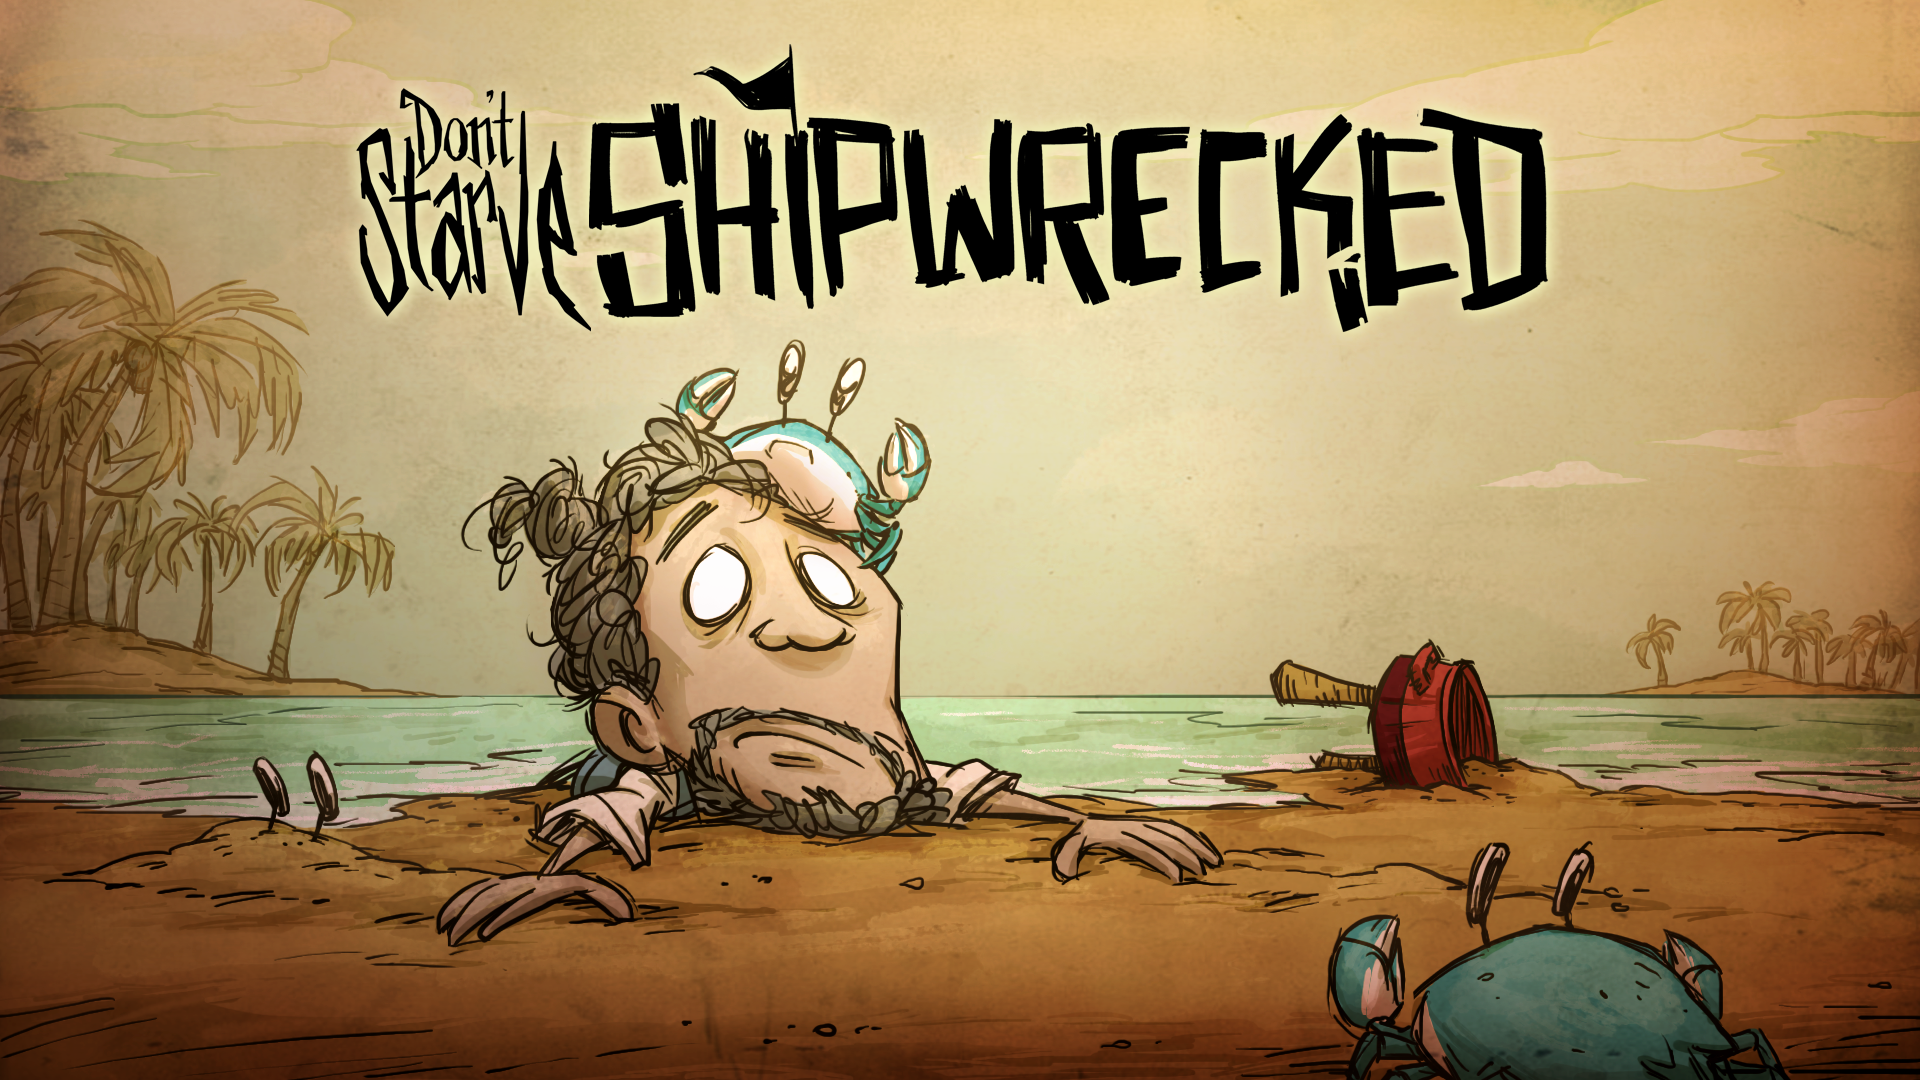 shipwrecked_poster.png